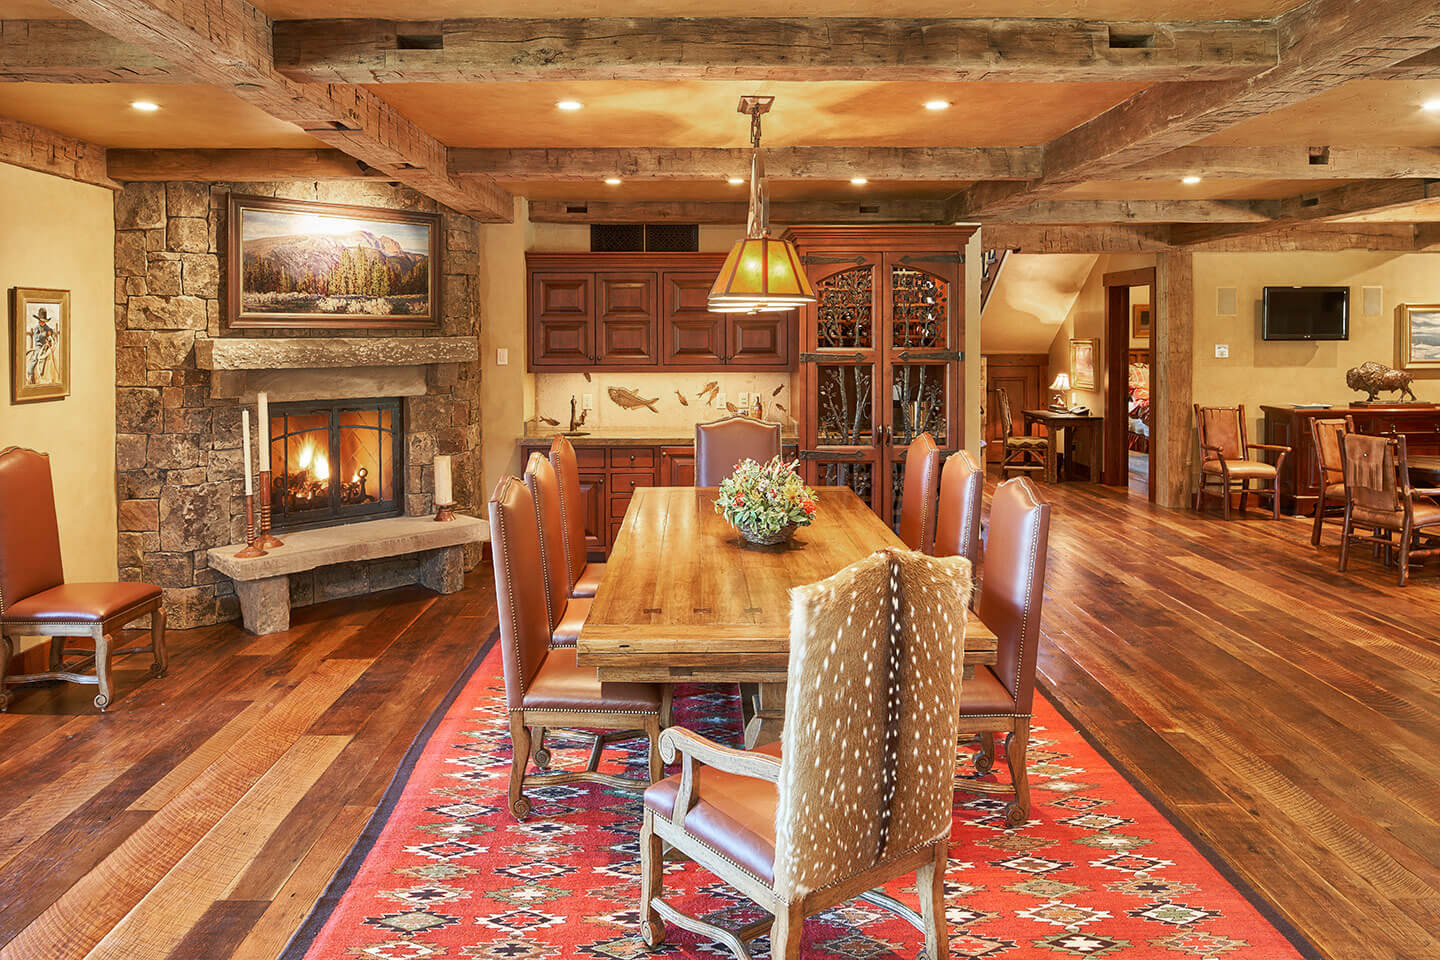 Dining room with wide plank flooring and rustic fireplace